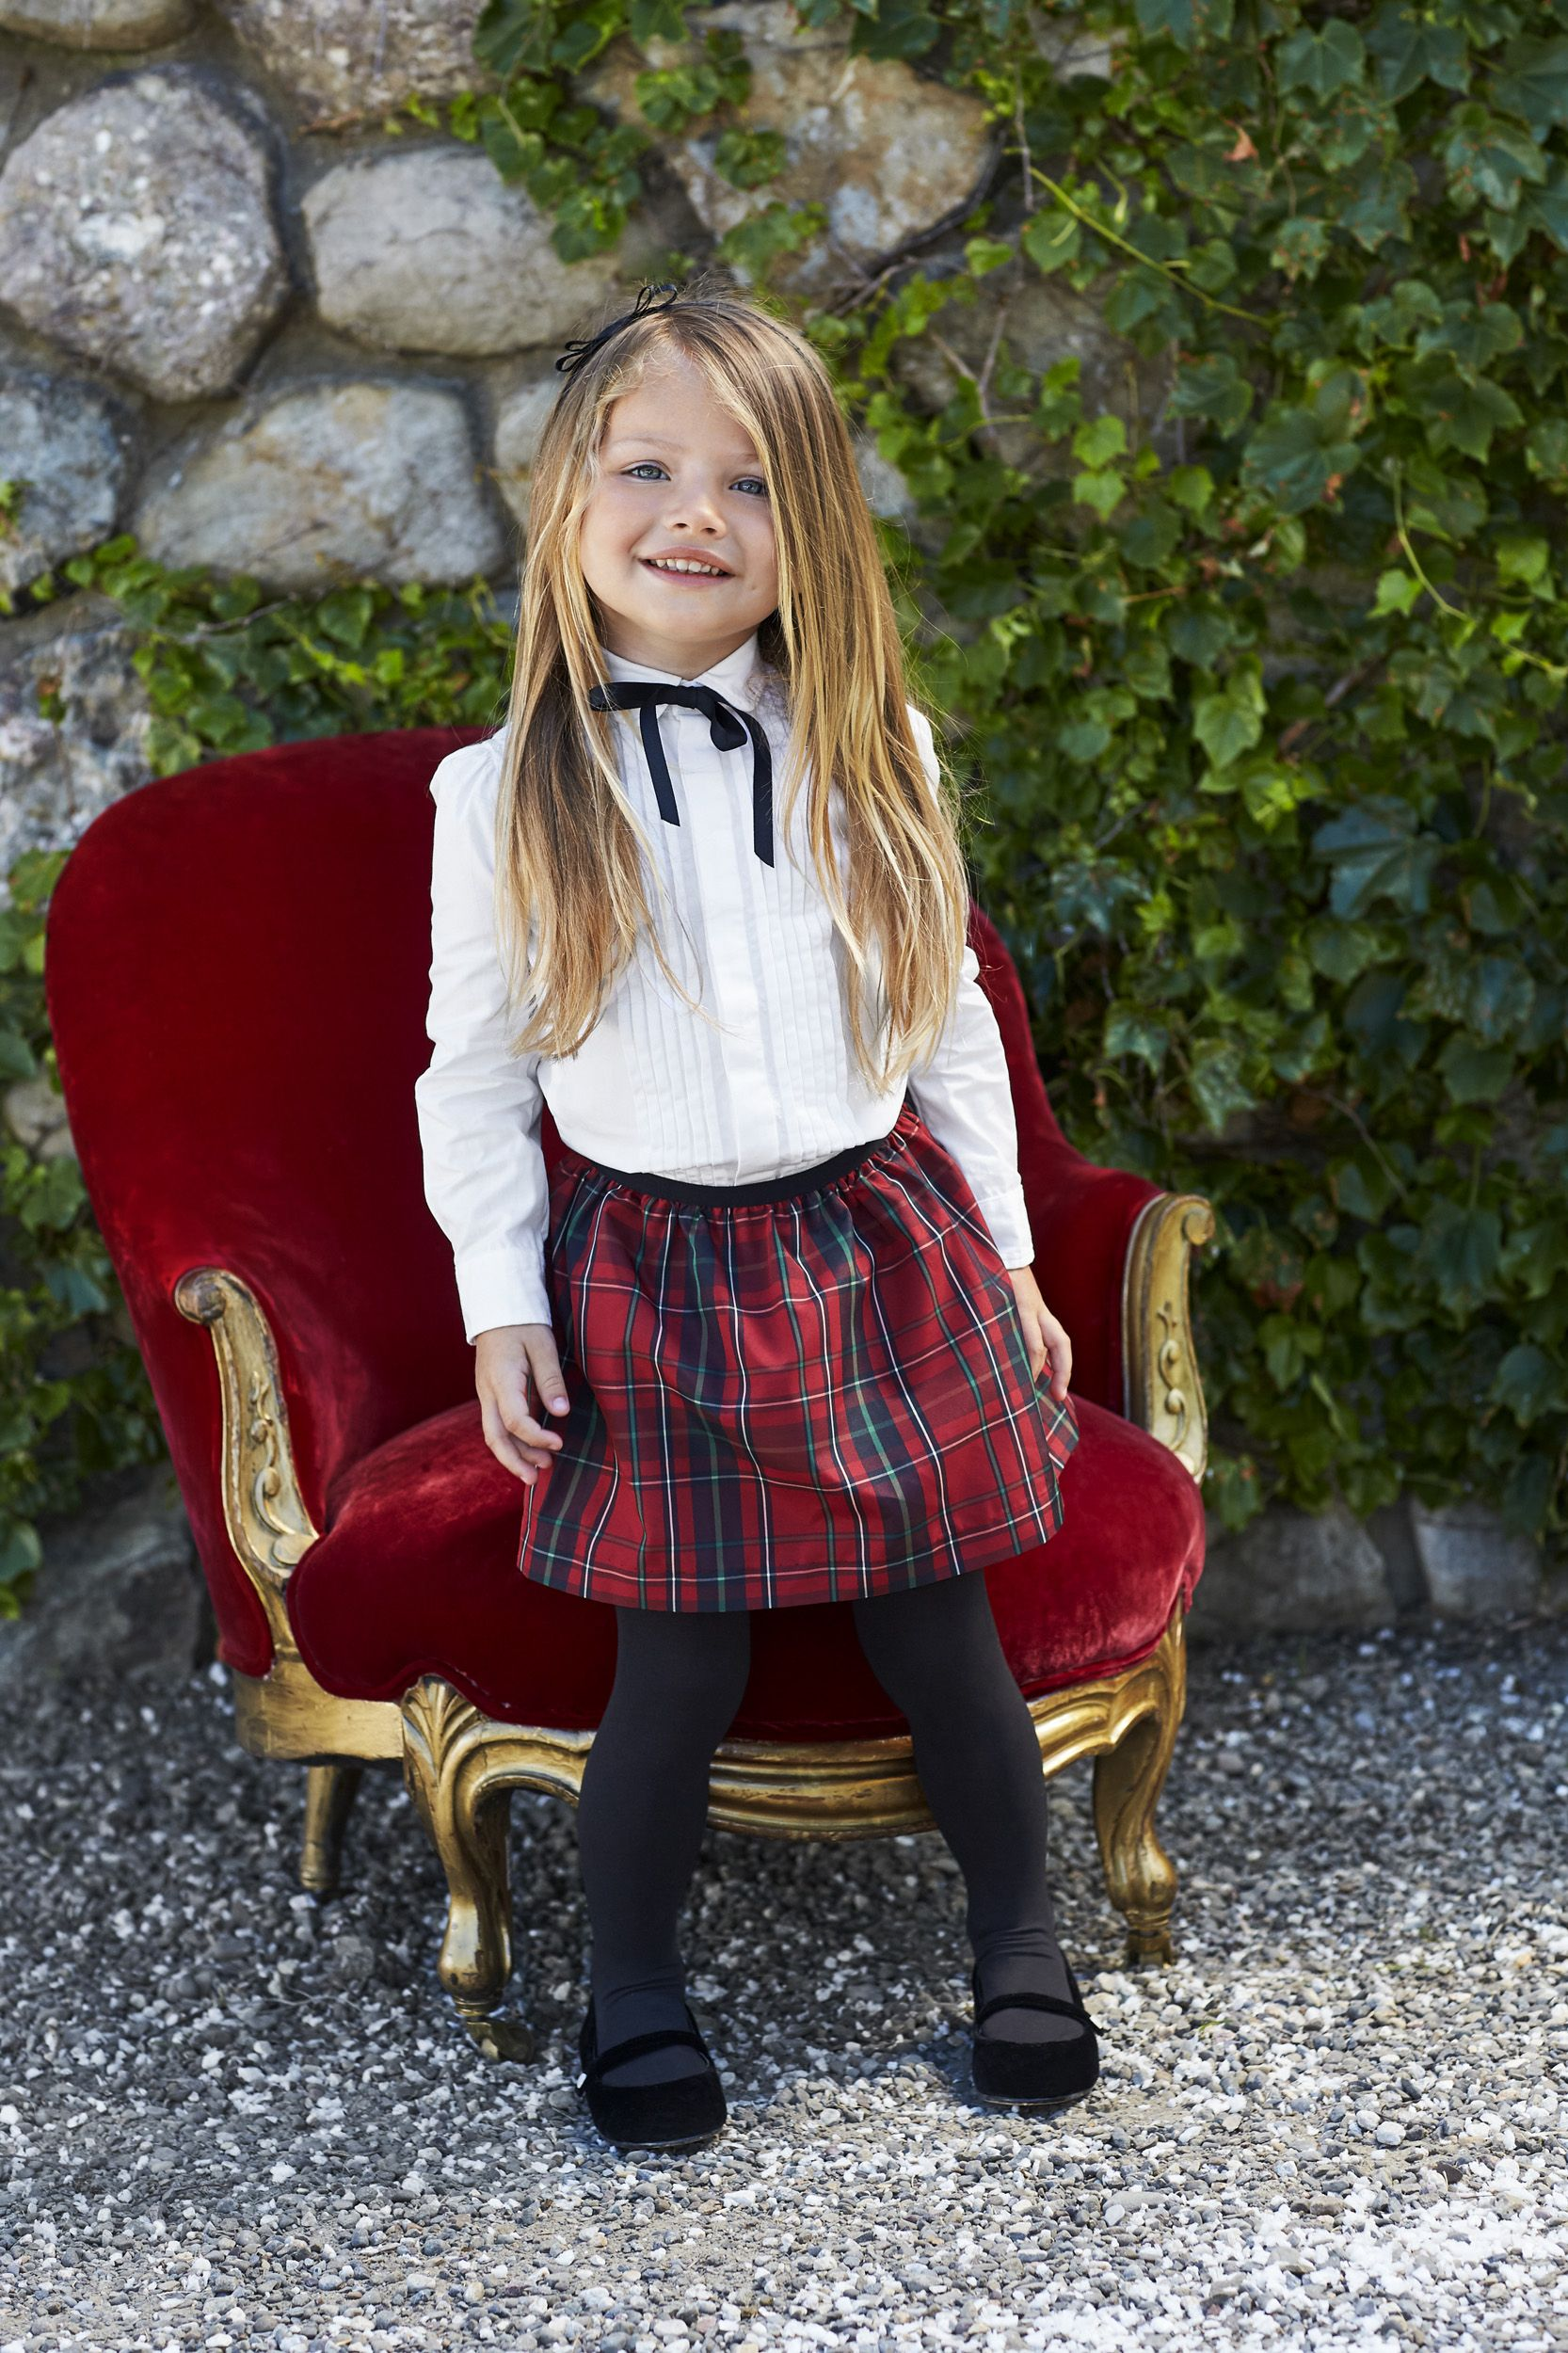 Polo Holiday Kids Plaid Tafetta Pull On Skirt Skirts For